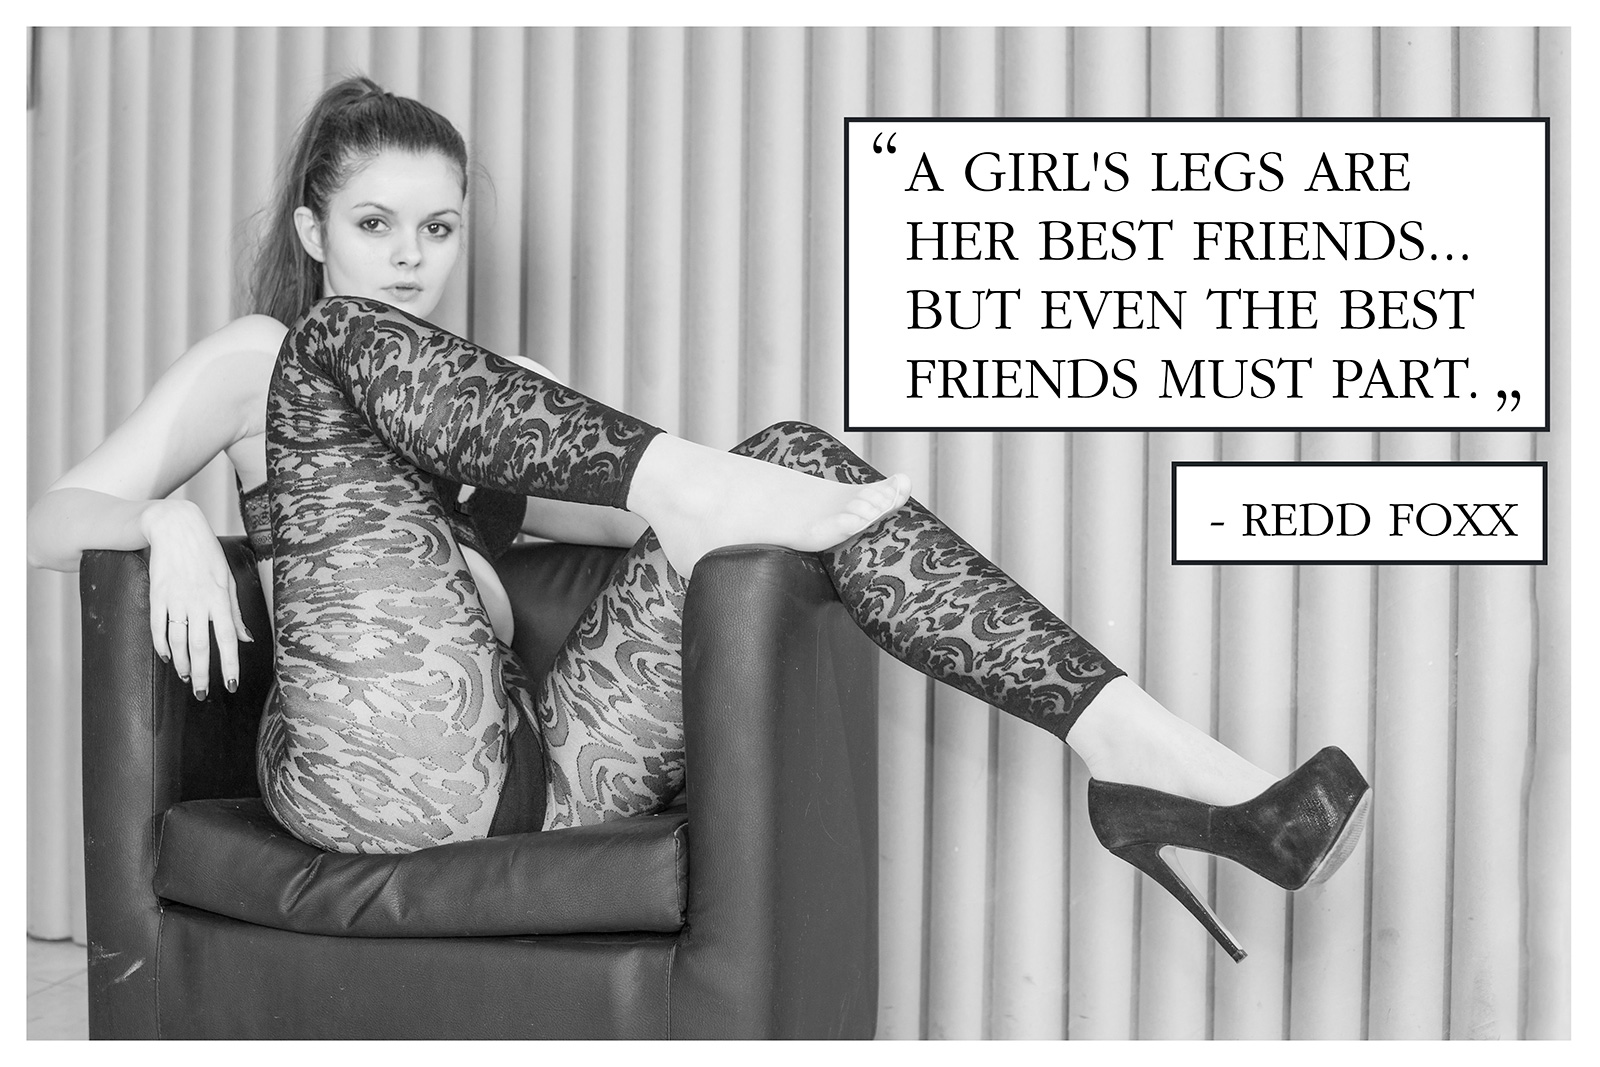 A girl's legs are her best friends... But even the best friends must part. - Redd Foxx